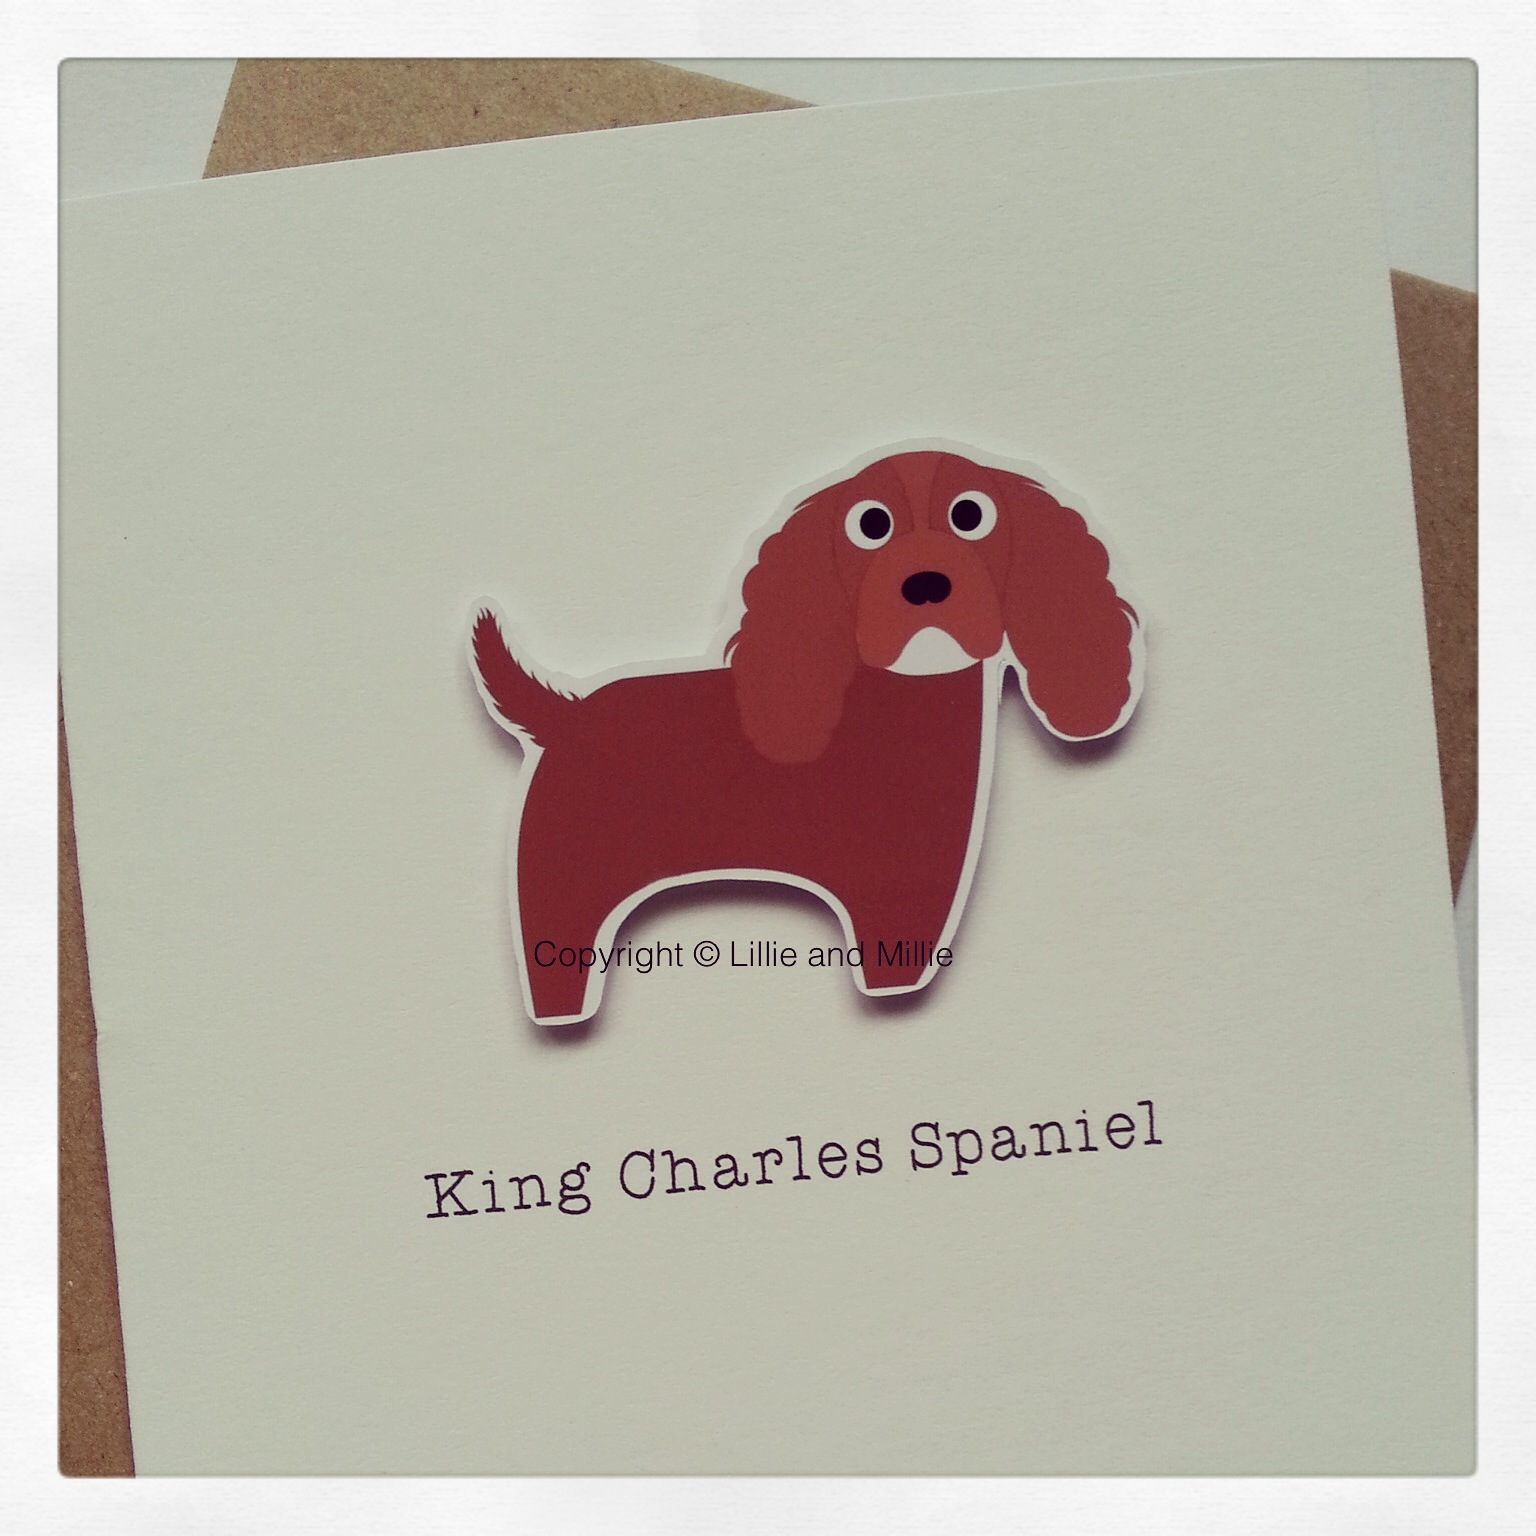 Cute and Cuddly Ruby King Charles Spaniel Greetings Card